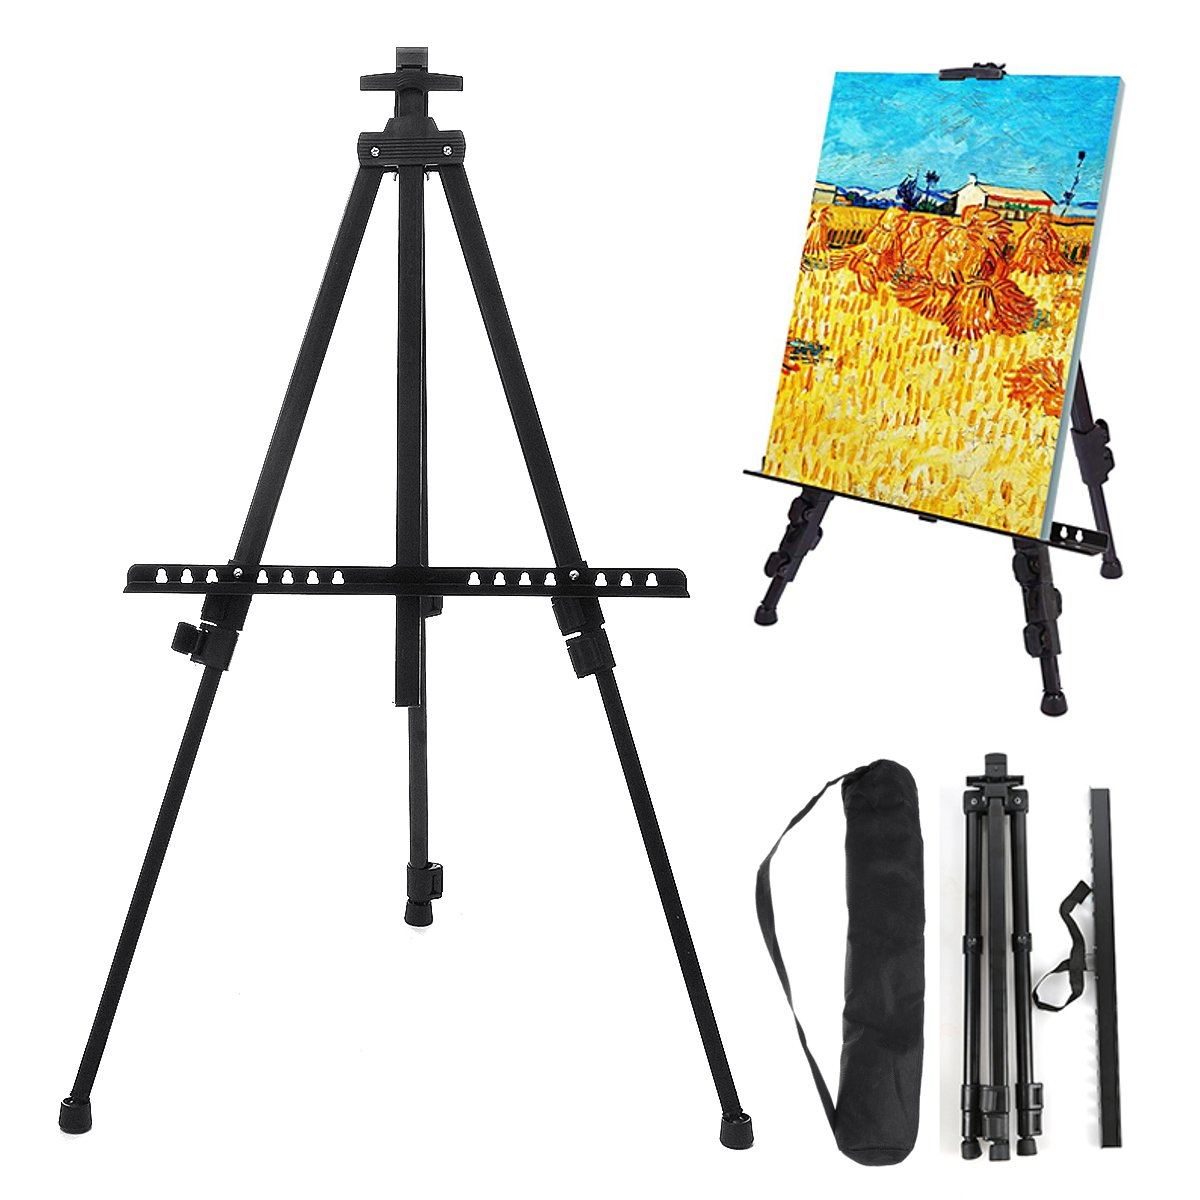 Portable Folding Iron Painting Display Stand Easel Telescopic Tripod Sketching Rack Organizer Tools Artist Painting Accessories